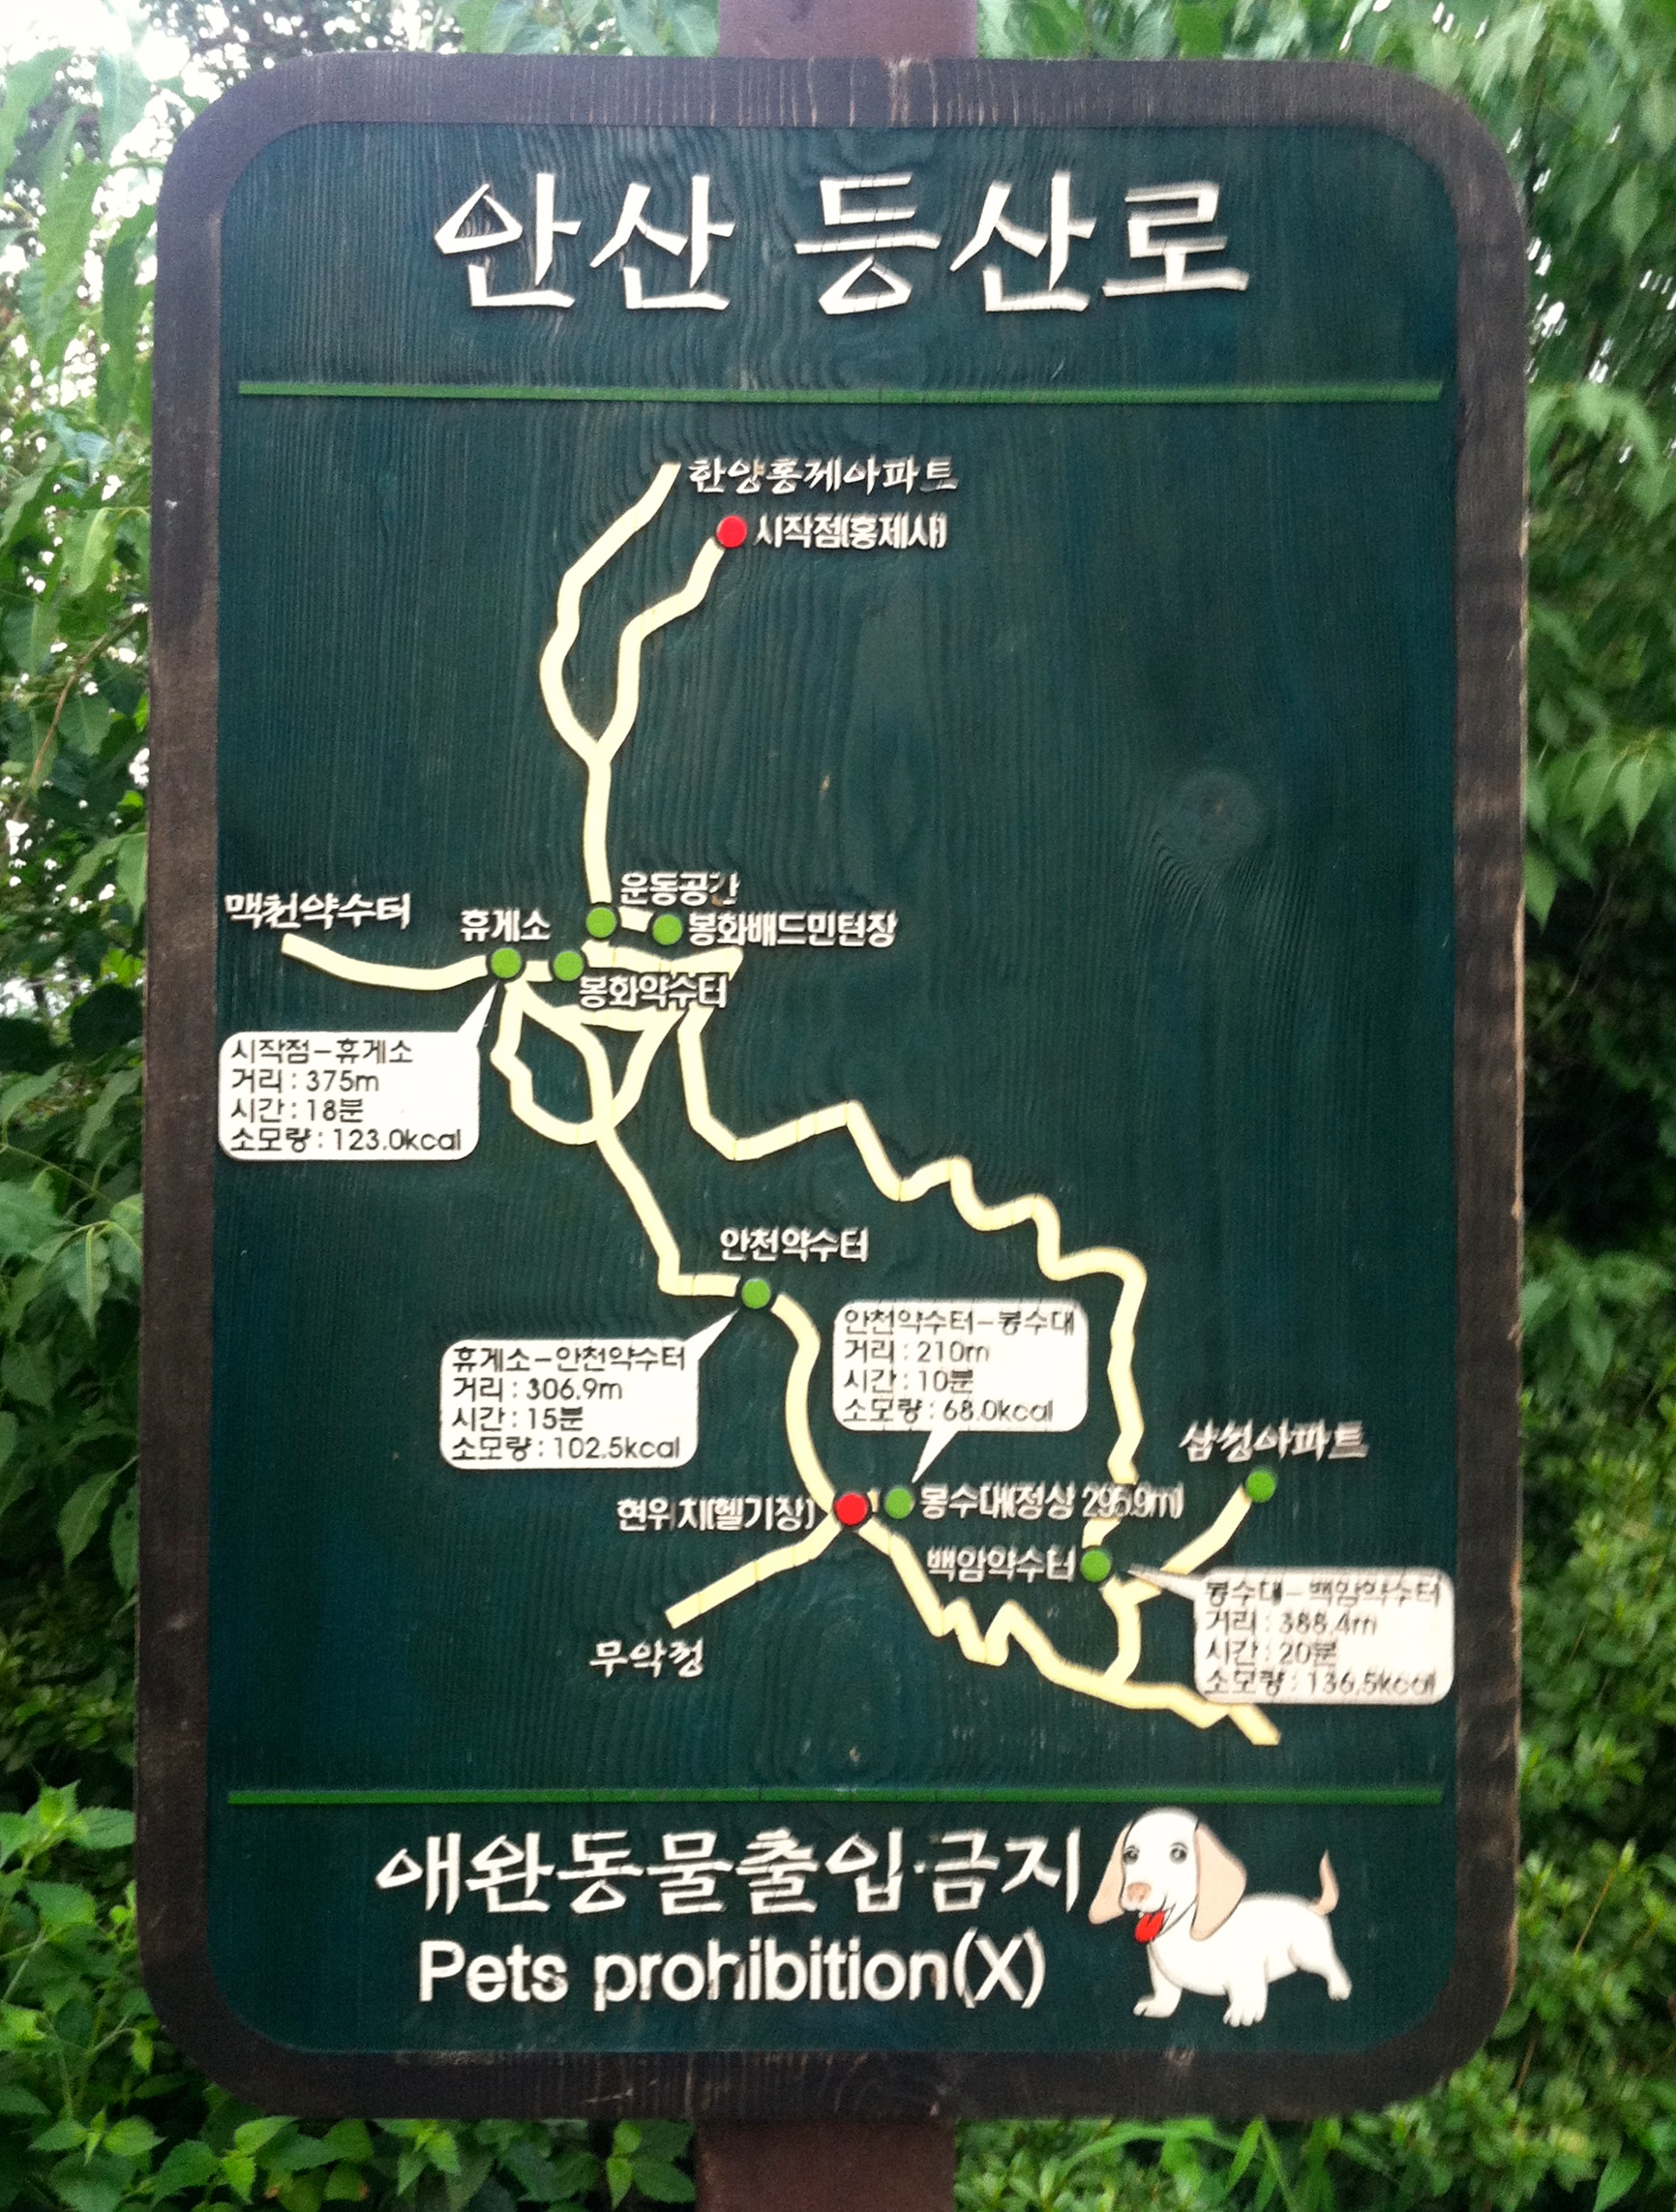 Ansan trail map tasty adventures